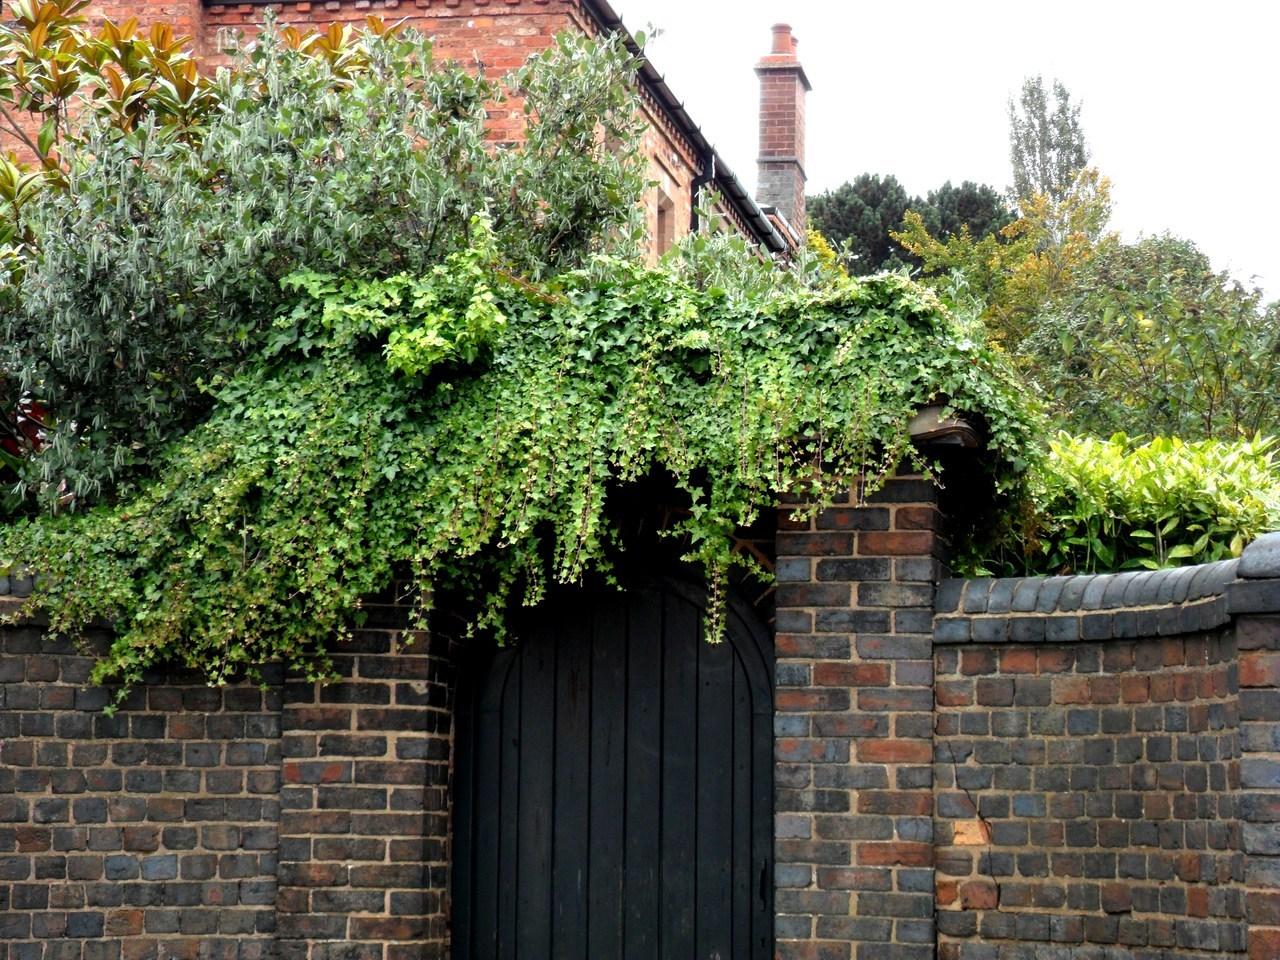 Ivy covered gateway, Walsall Wood Road, Aldridge,West Midlands, England.